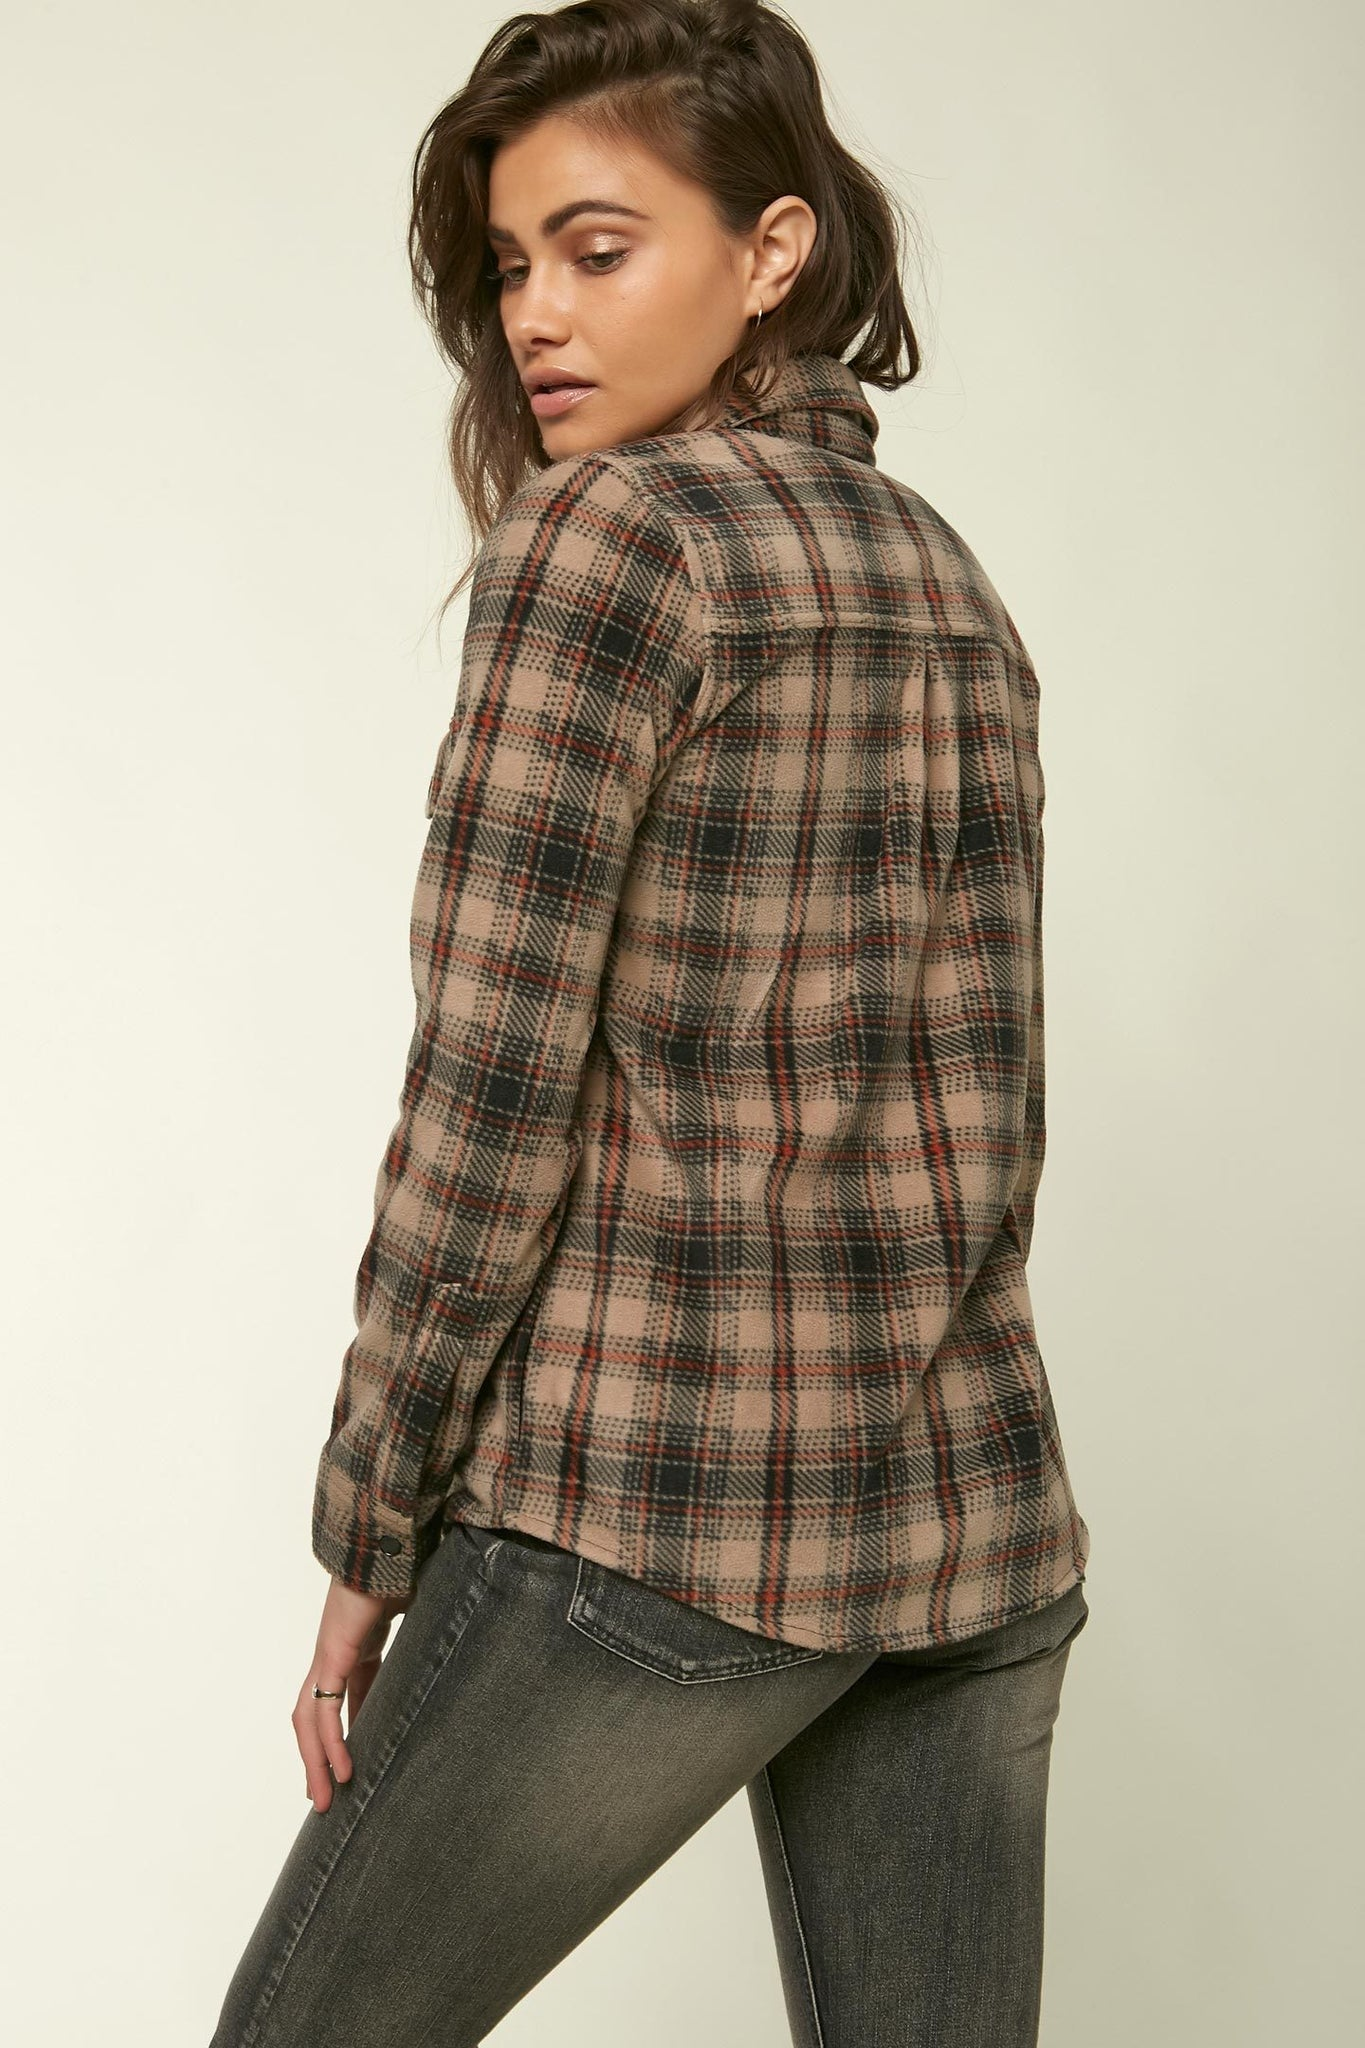 Zuma Superfleece Flannel Top | O'Neill Clothing USA